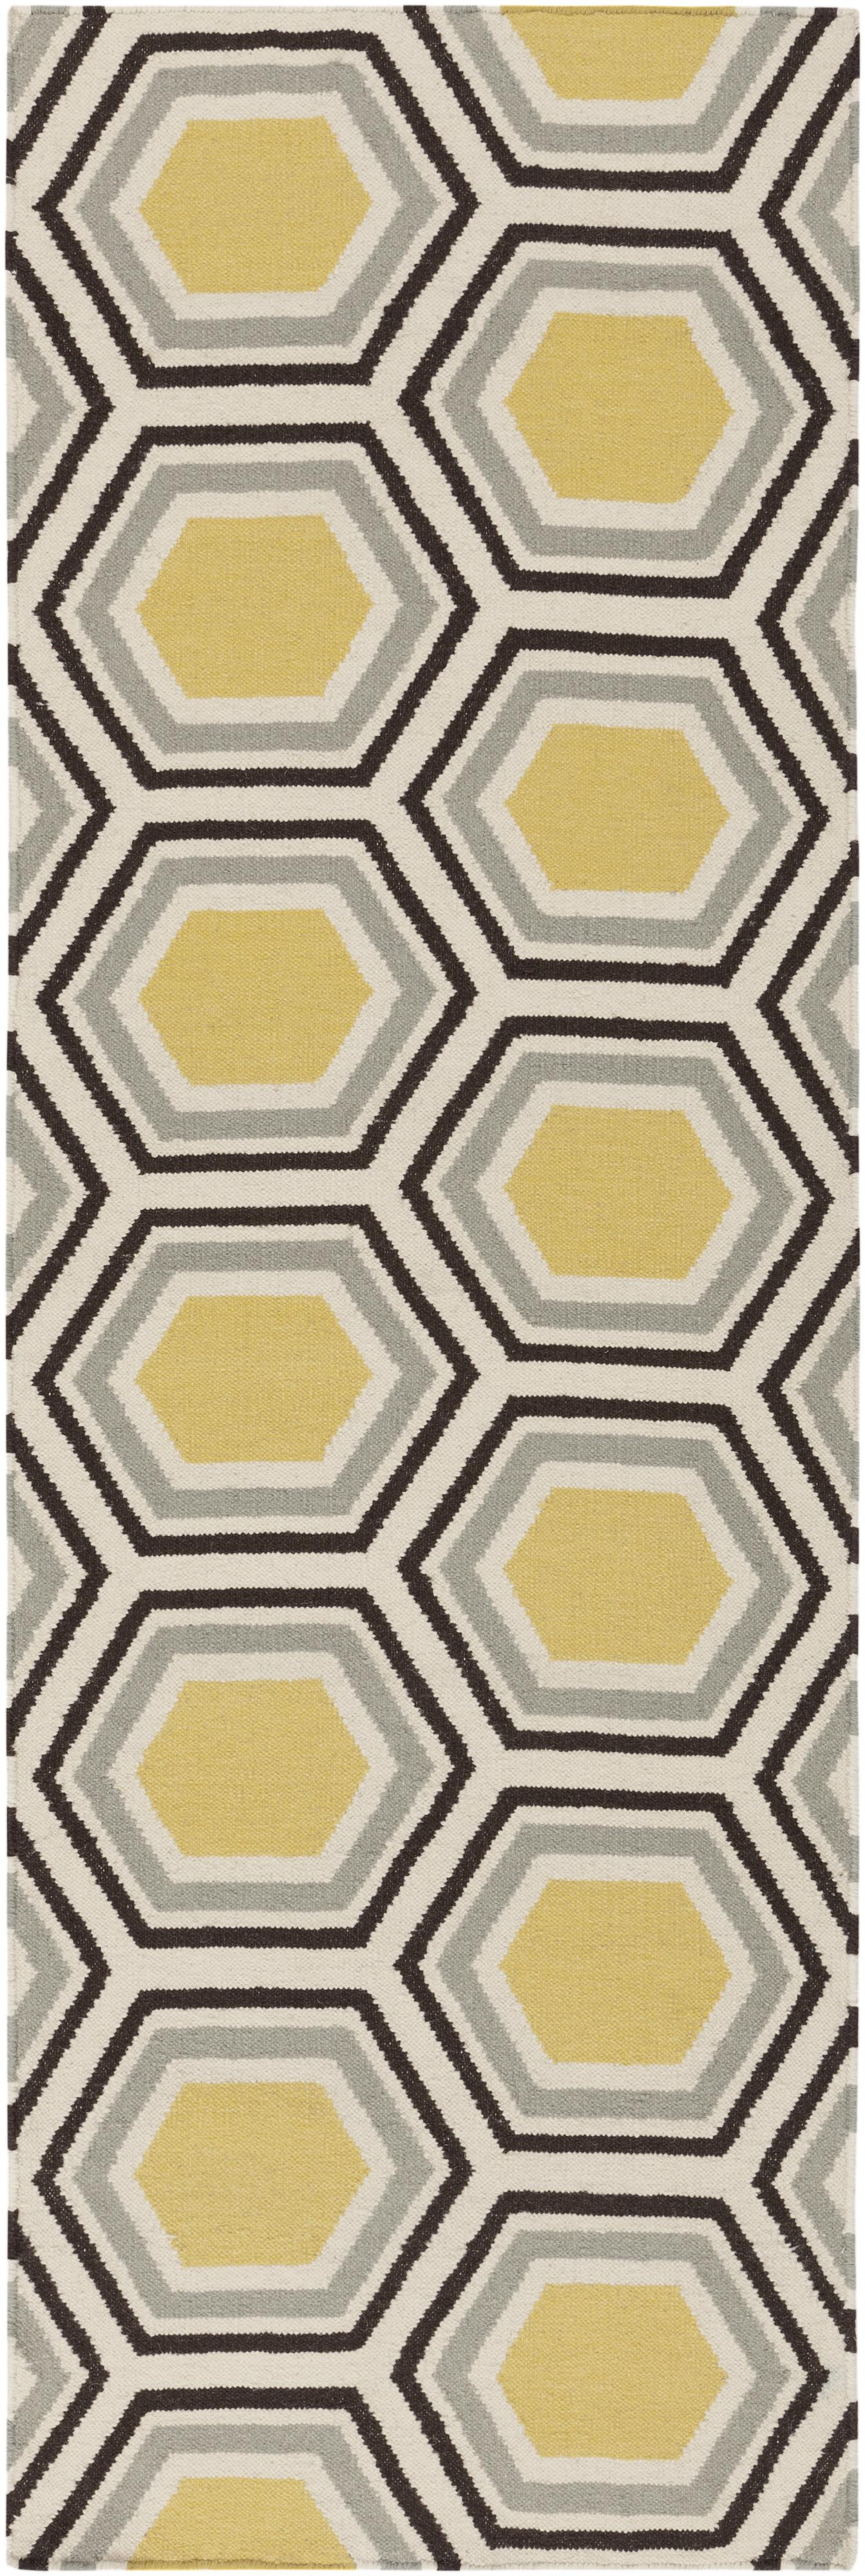 "Surya Fallon 2'6"" x 8' - Item Number: FAL1037-268"